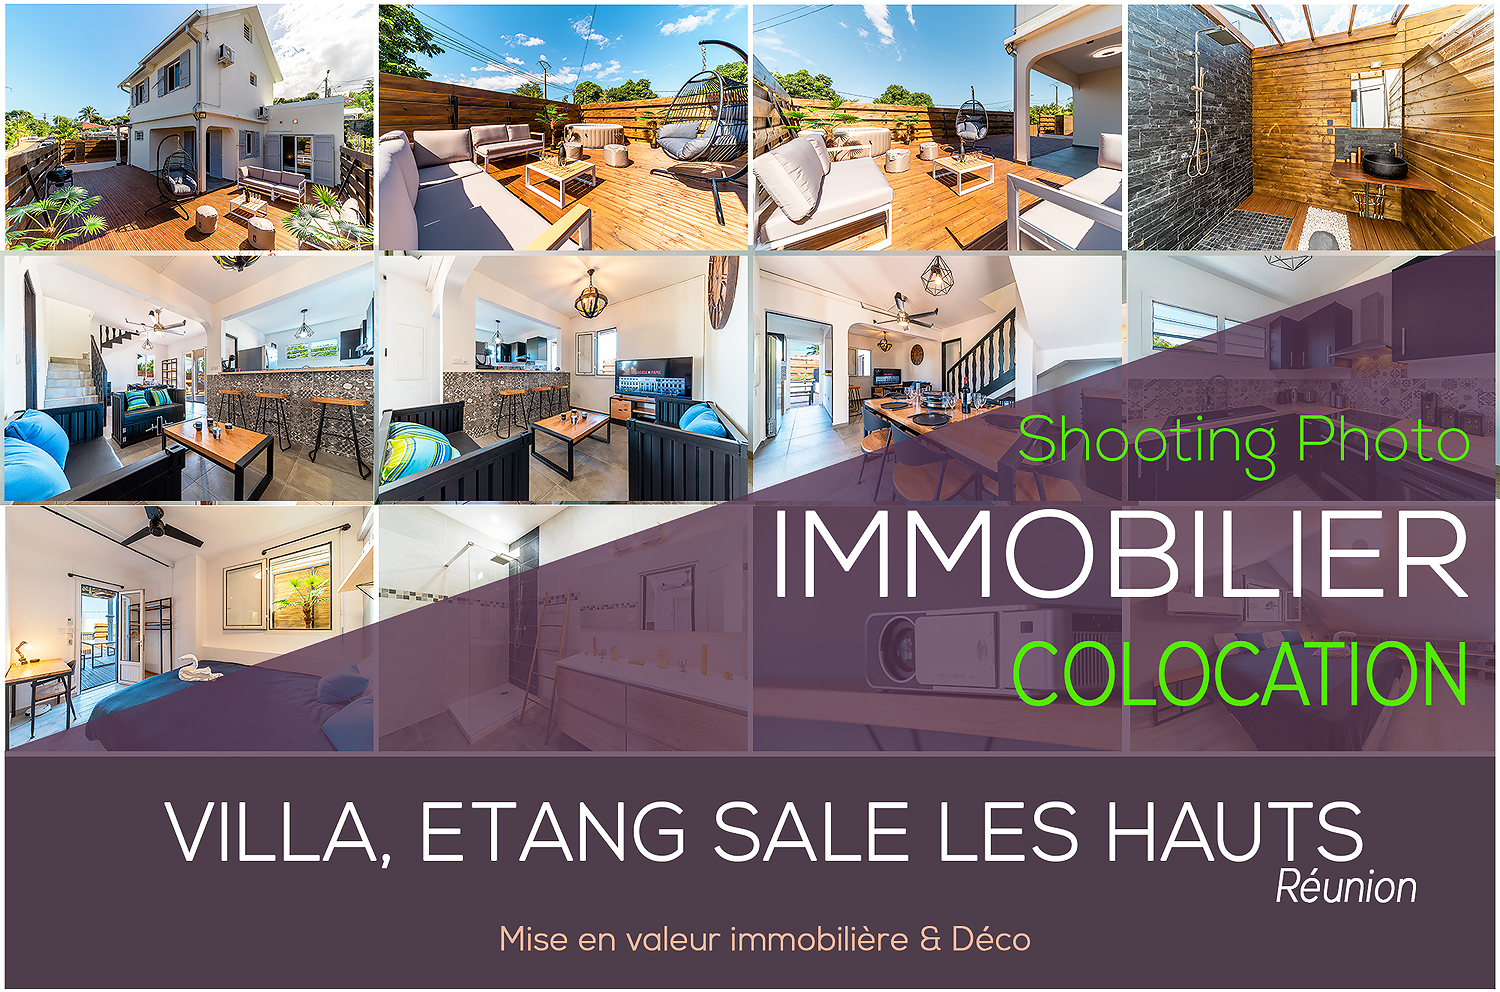 Photographe Immobilier Reunion Colocation Villa